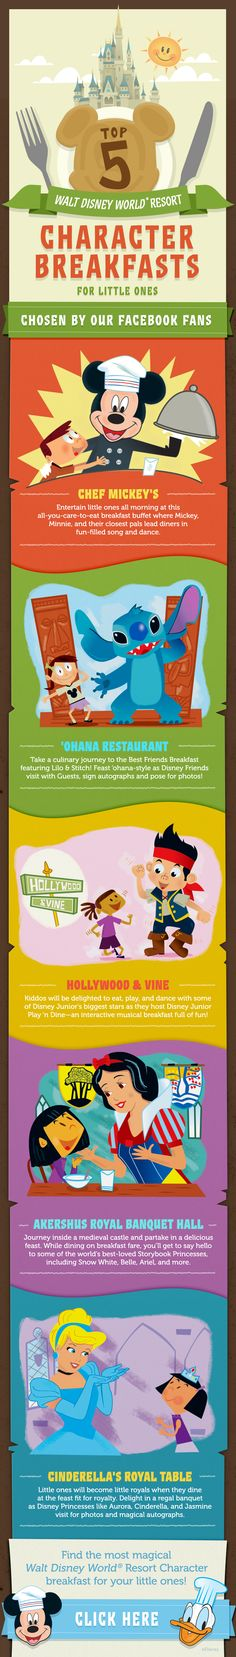 Top 5 Character Breakfasts for little ones at Walt Disney World! Let's start planning your Magical Walt Disney World getaway today! donnakay@thewdwguru.com Disney World Tips And Tricks, Walt Disney World, Frosted Flakes, Travel Tips, Cereal, Breakfast, Box, Snare Drum, Travel Advice